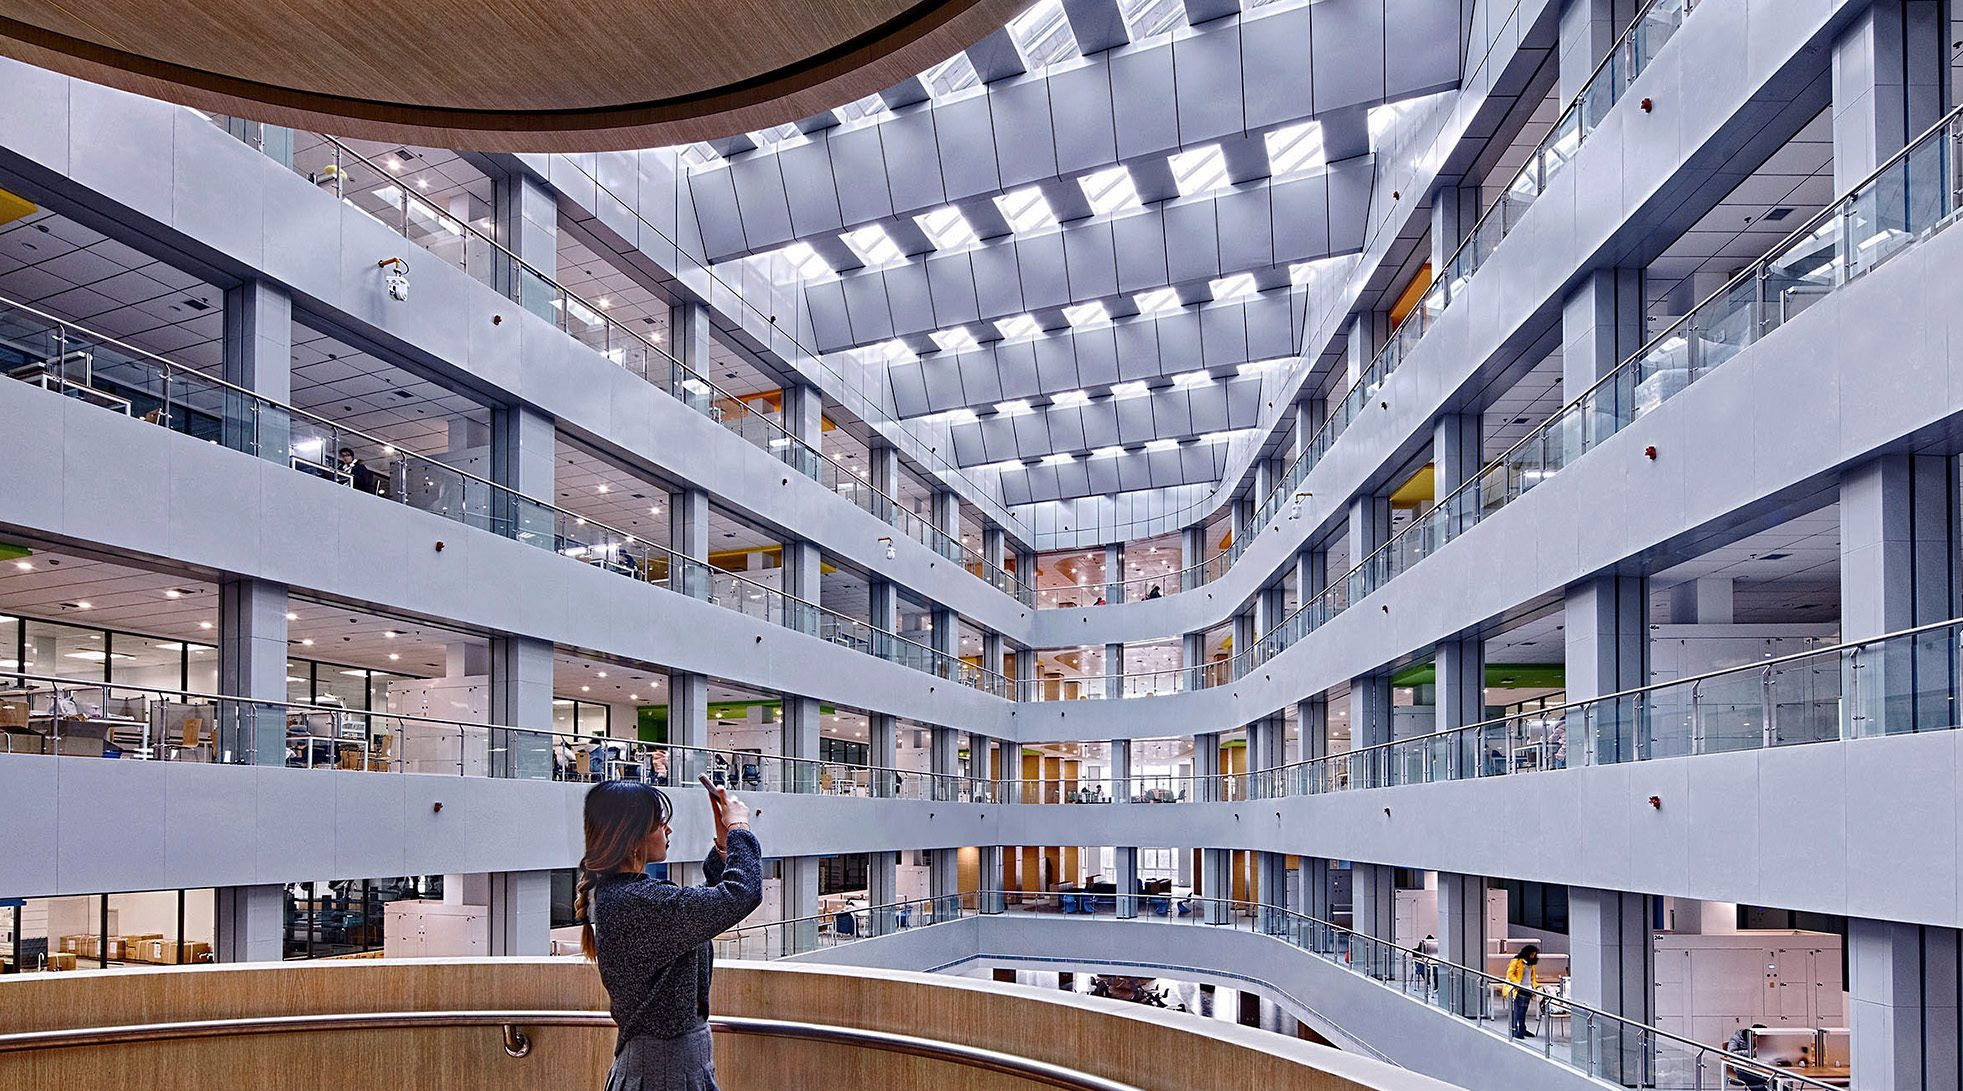 Architectural photography of universities and research centers